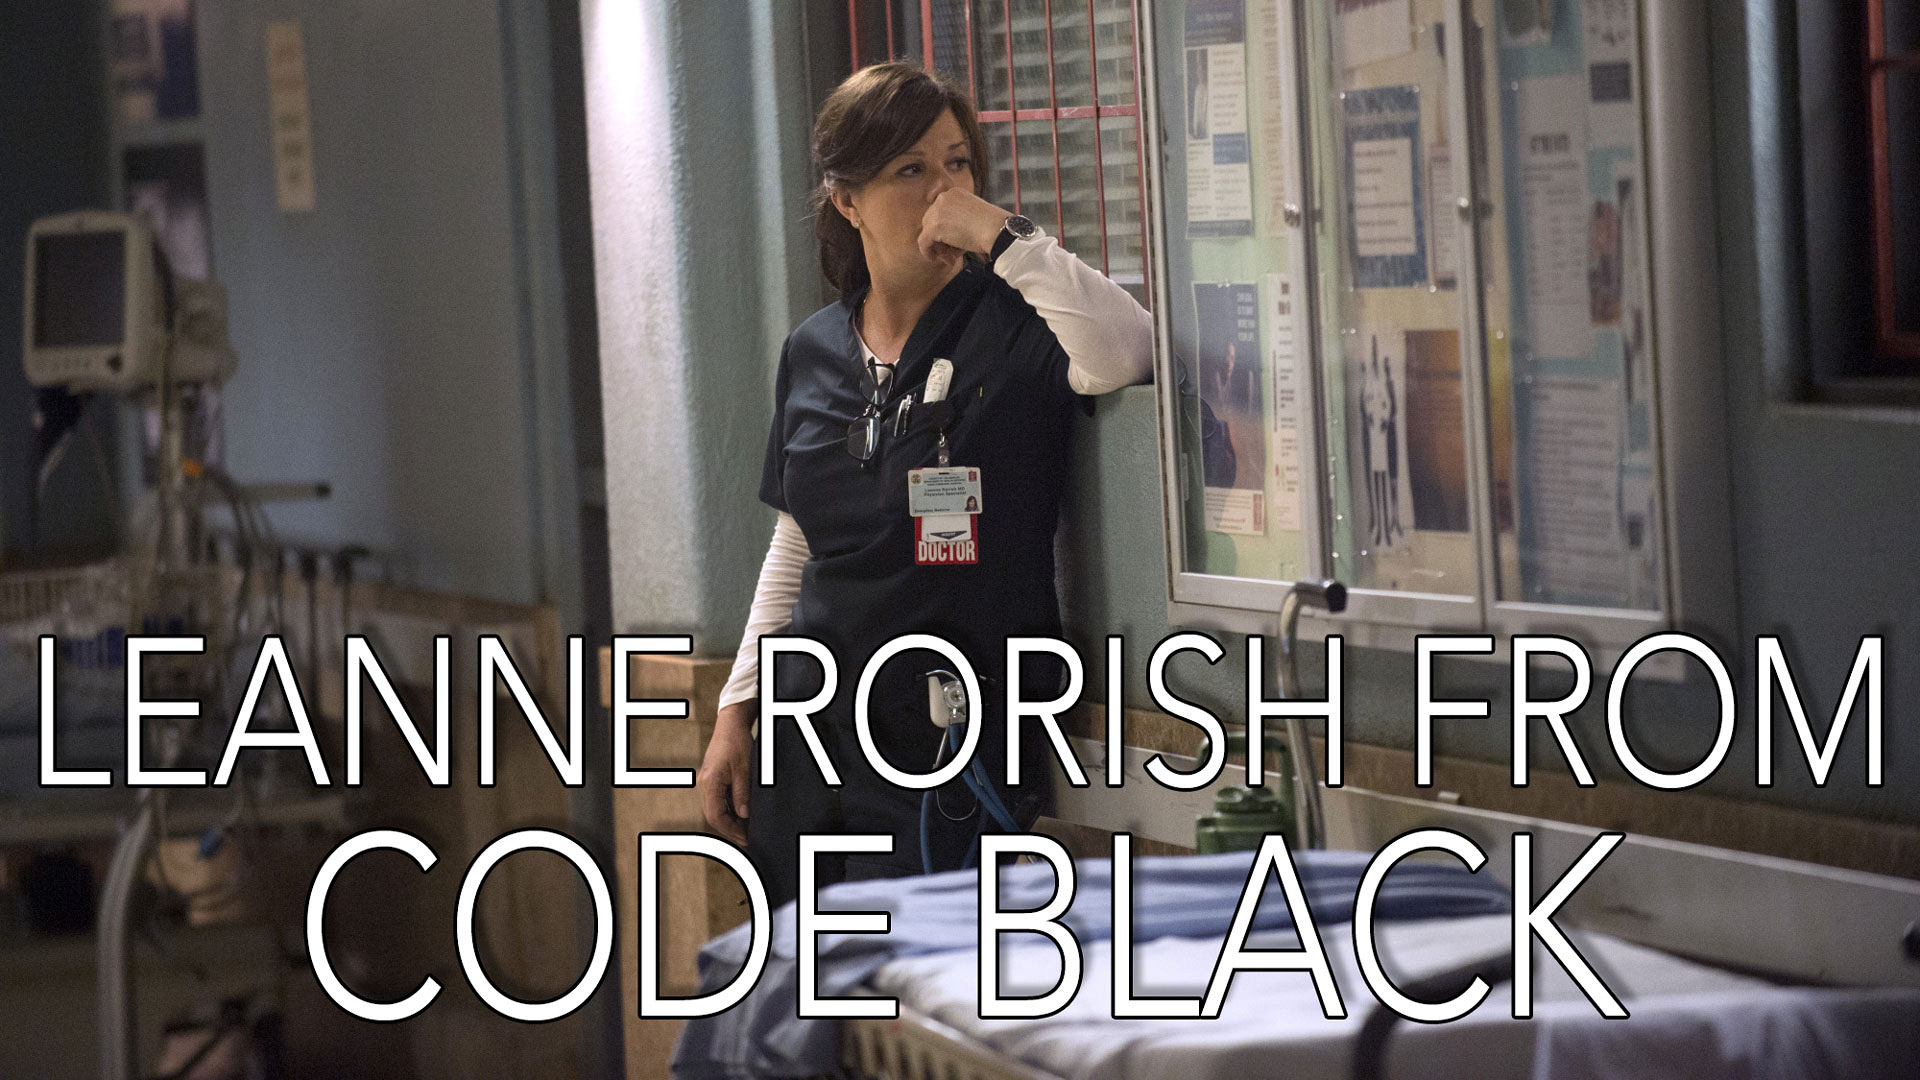 It's a line said by Leanne Rorish on Code Black!